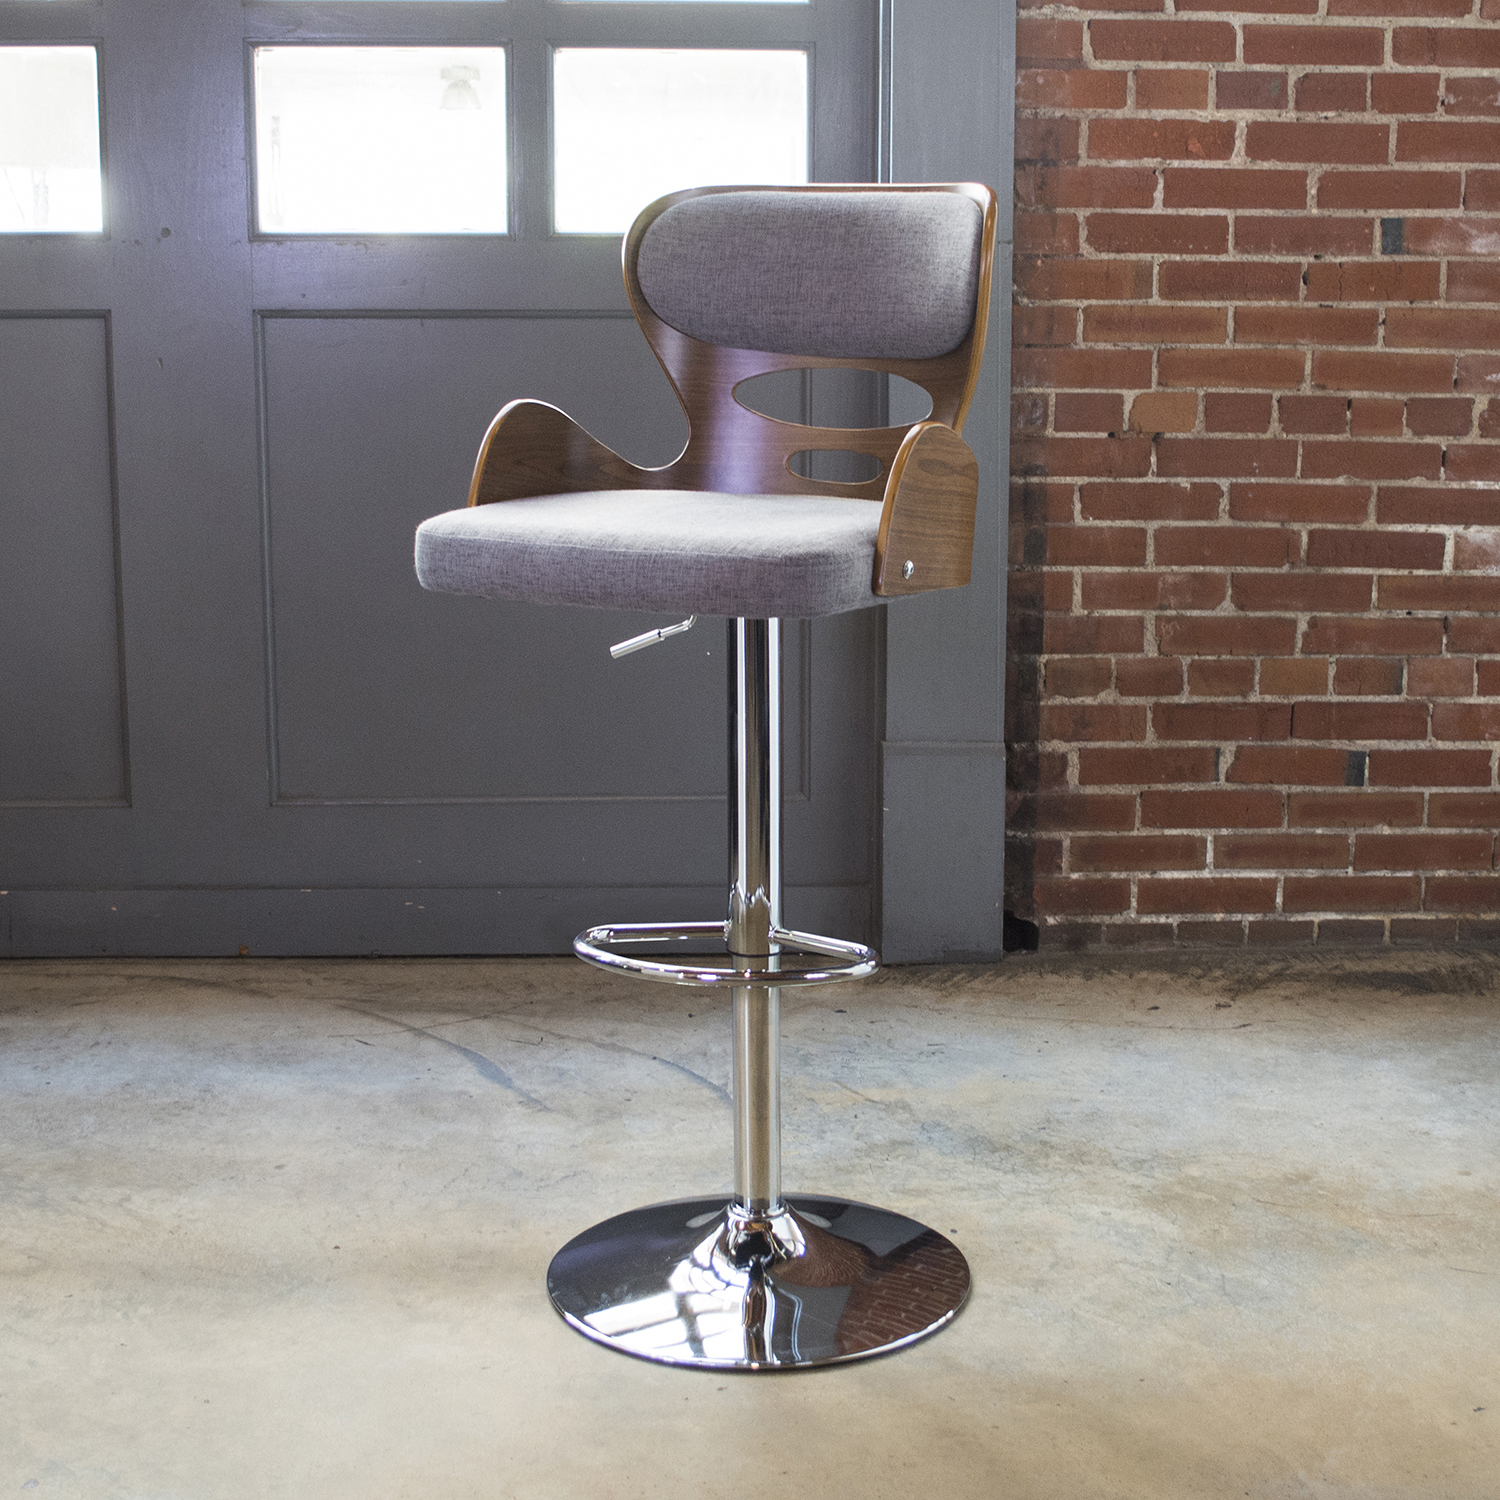 BSBWWPG3 Bent Wood Grey Fabric Bar Stool